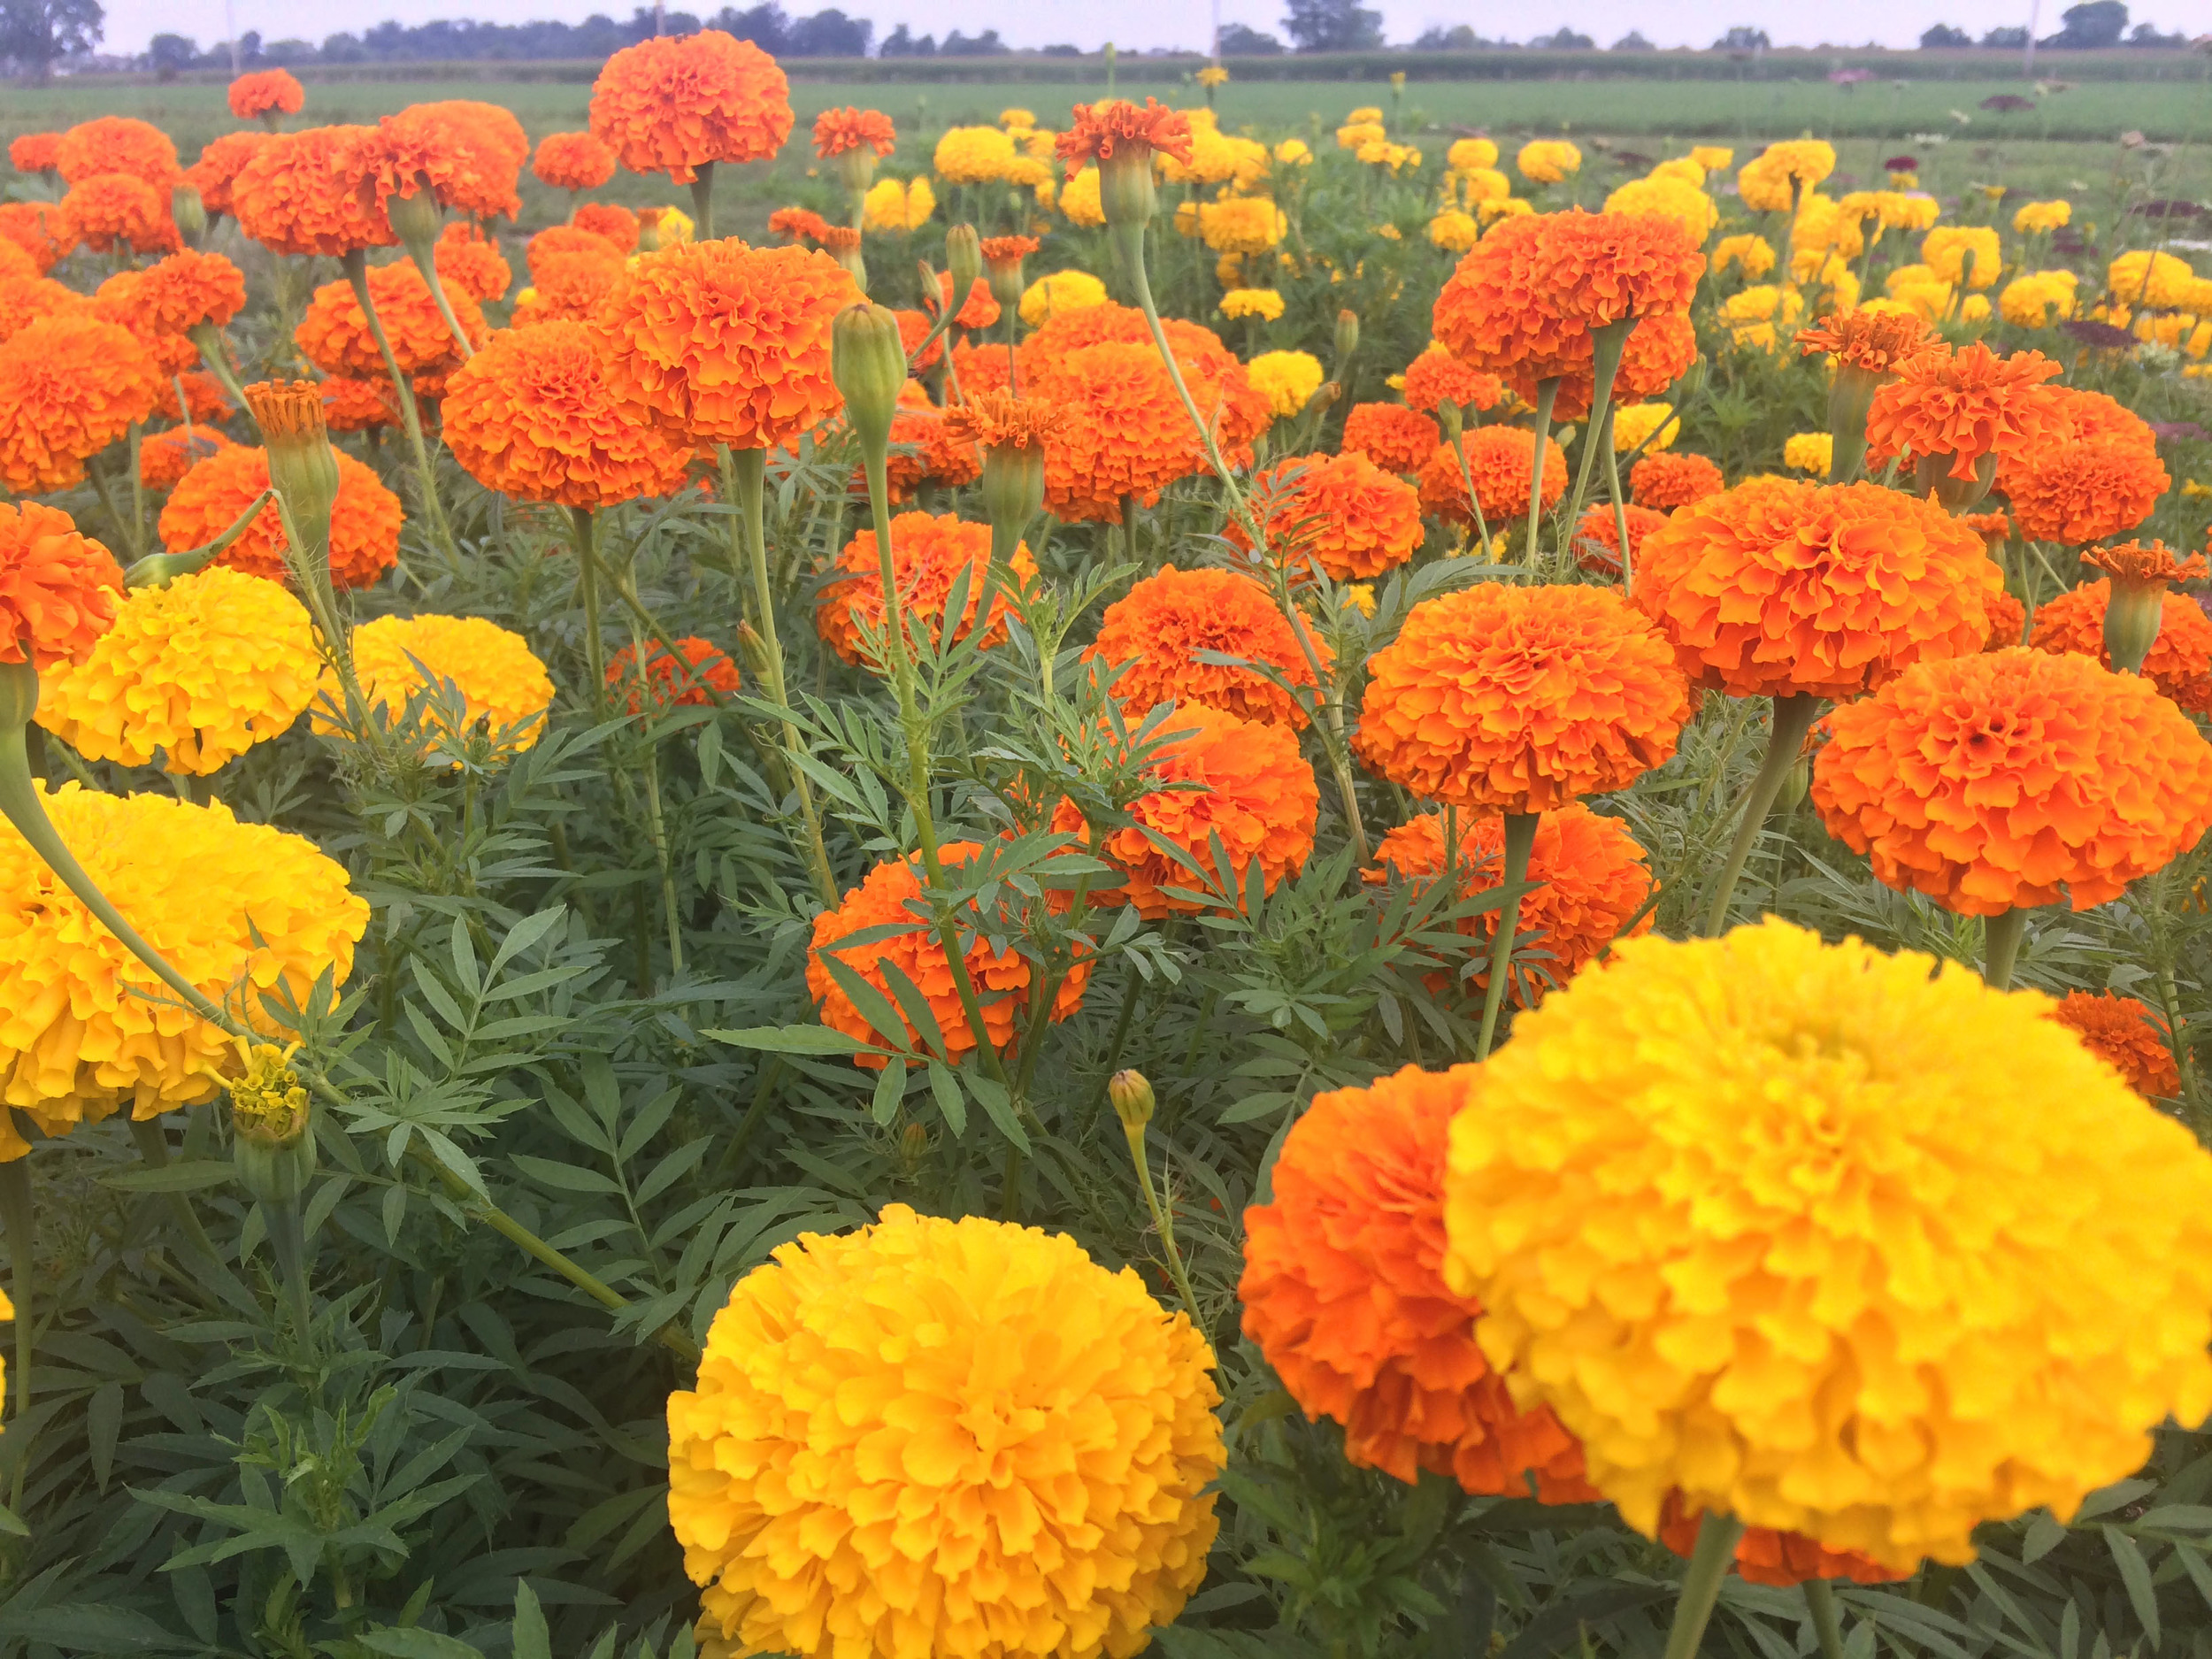 Marigolds Did you know that if the foliage is removed, the fragrance is removed with it?